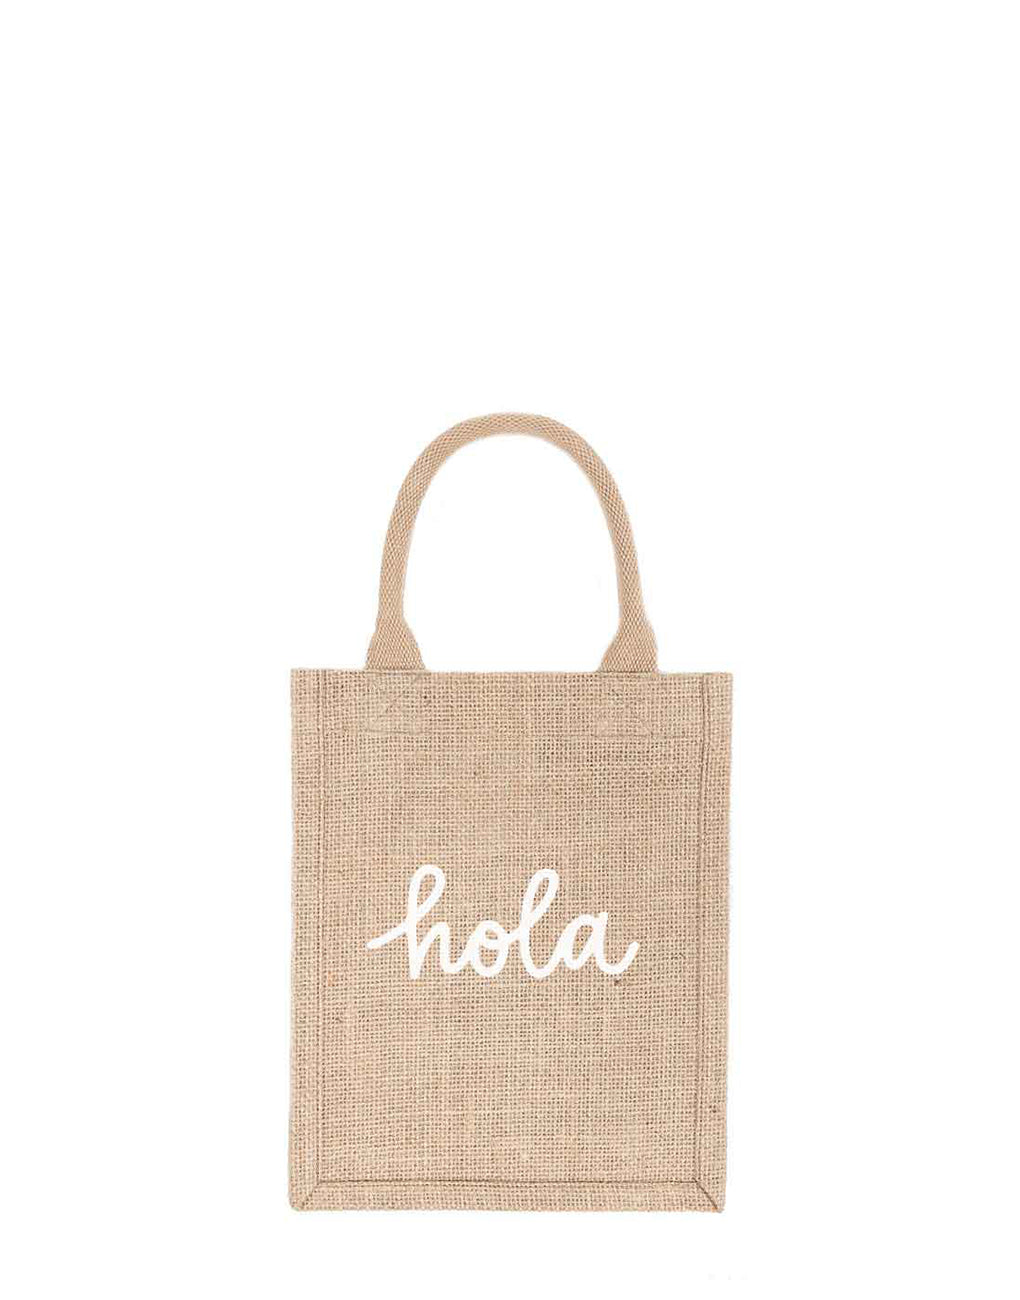 Small Hola Reusable Gift Tote In White Font | The Little Market